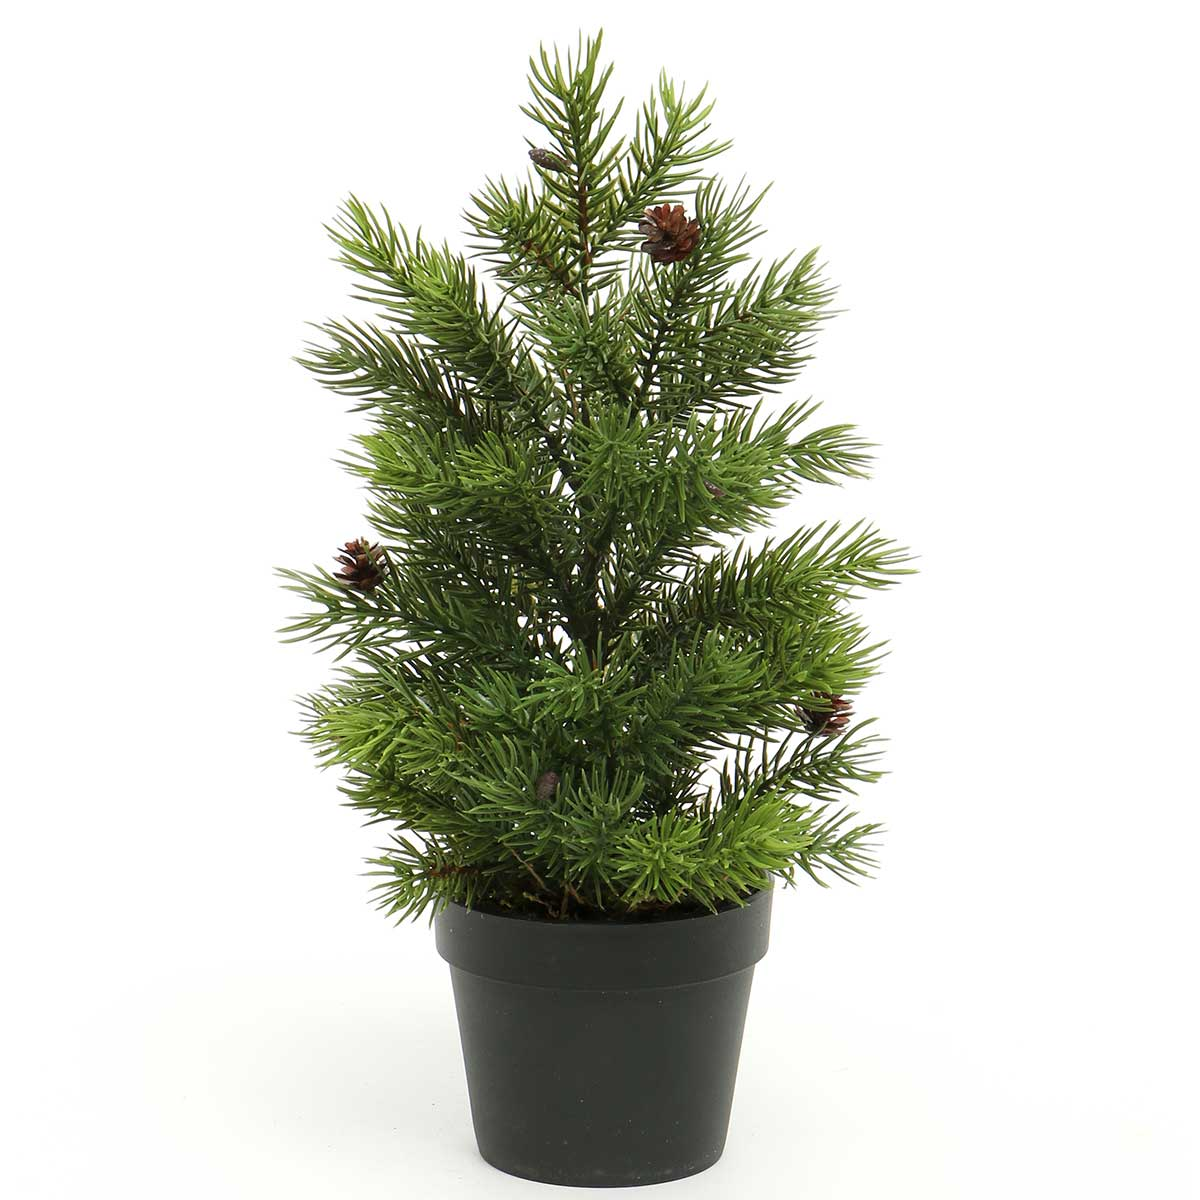 SPRUCE TREE WITH PINECONES IN